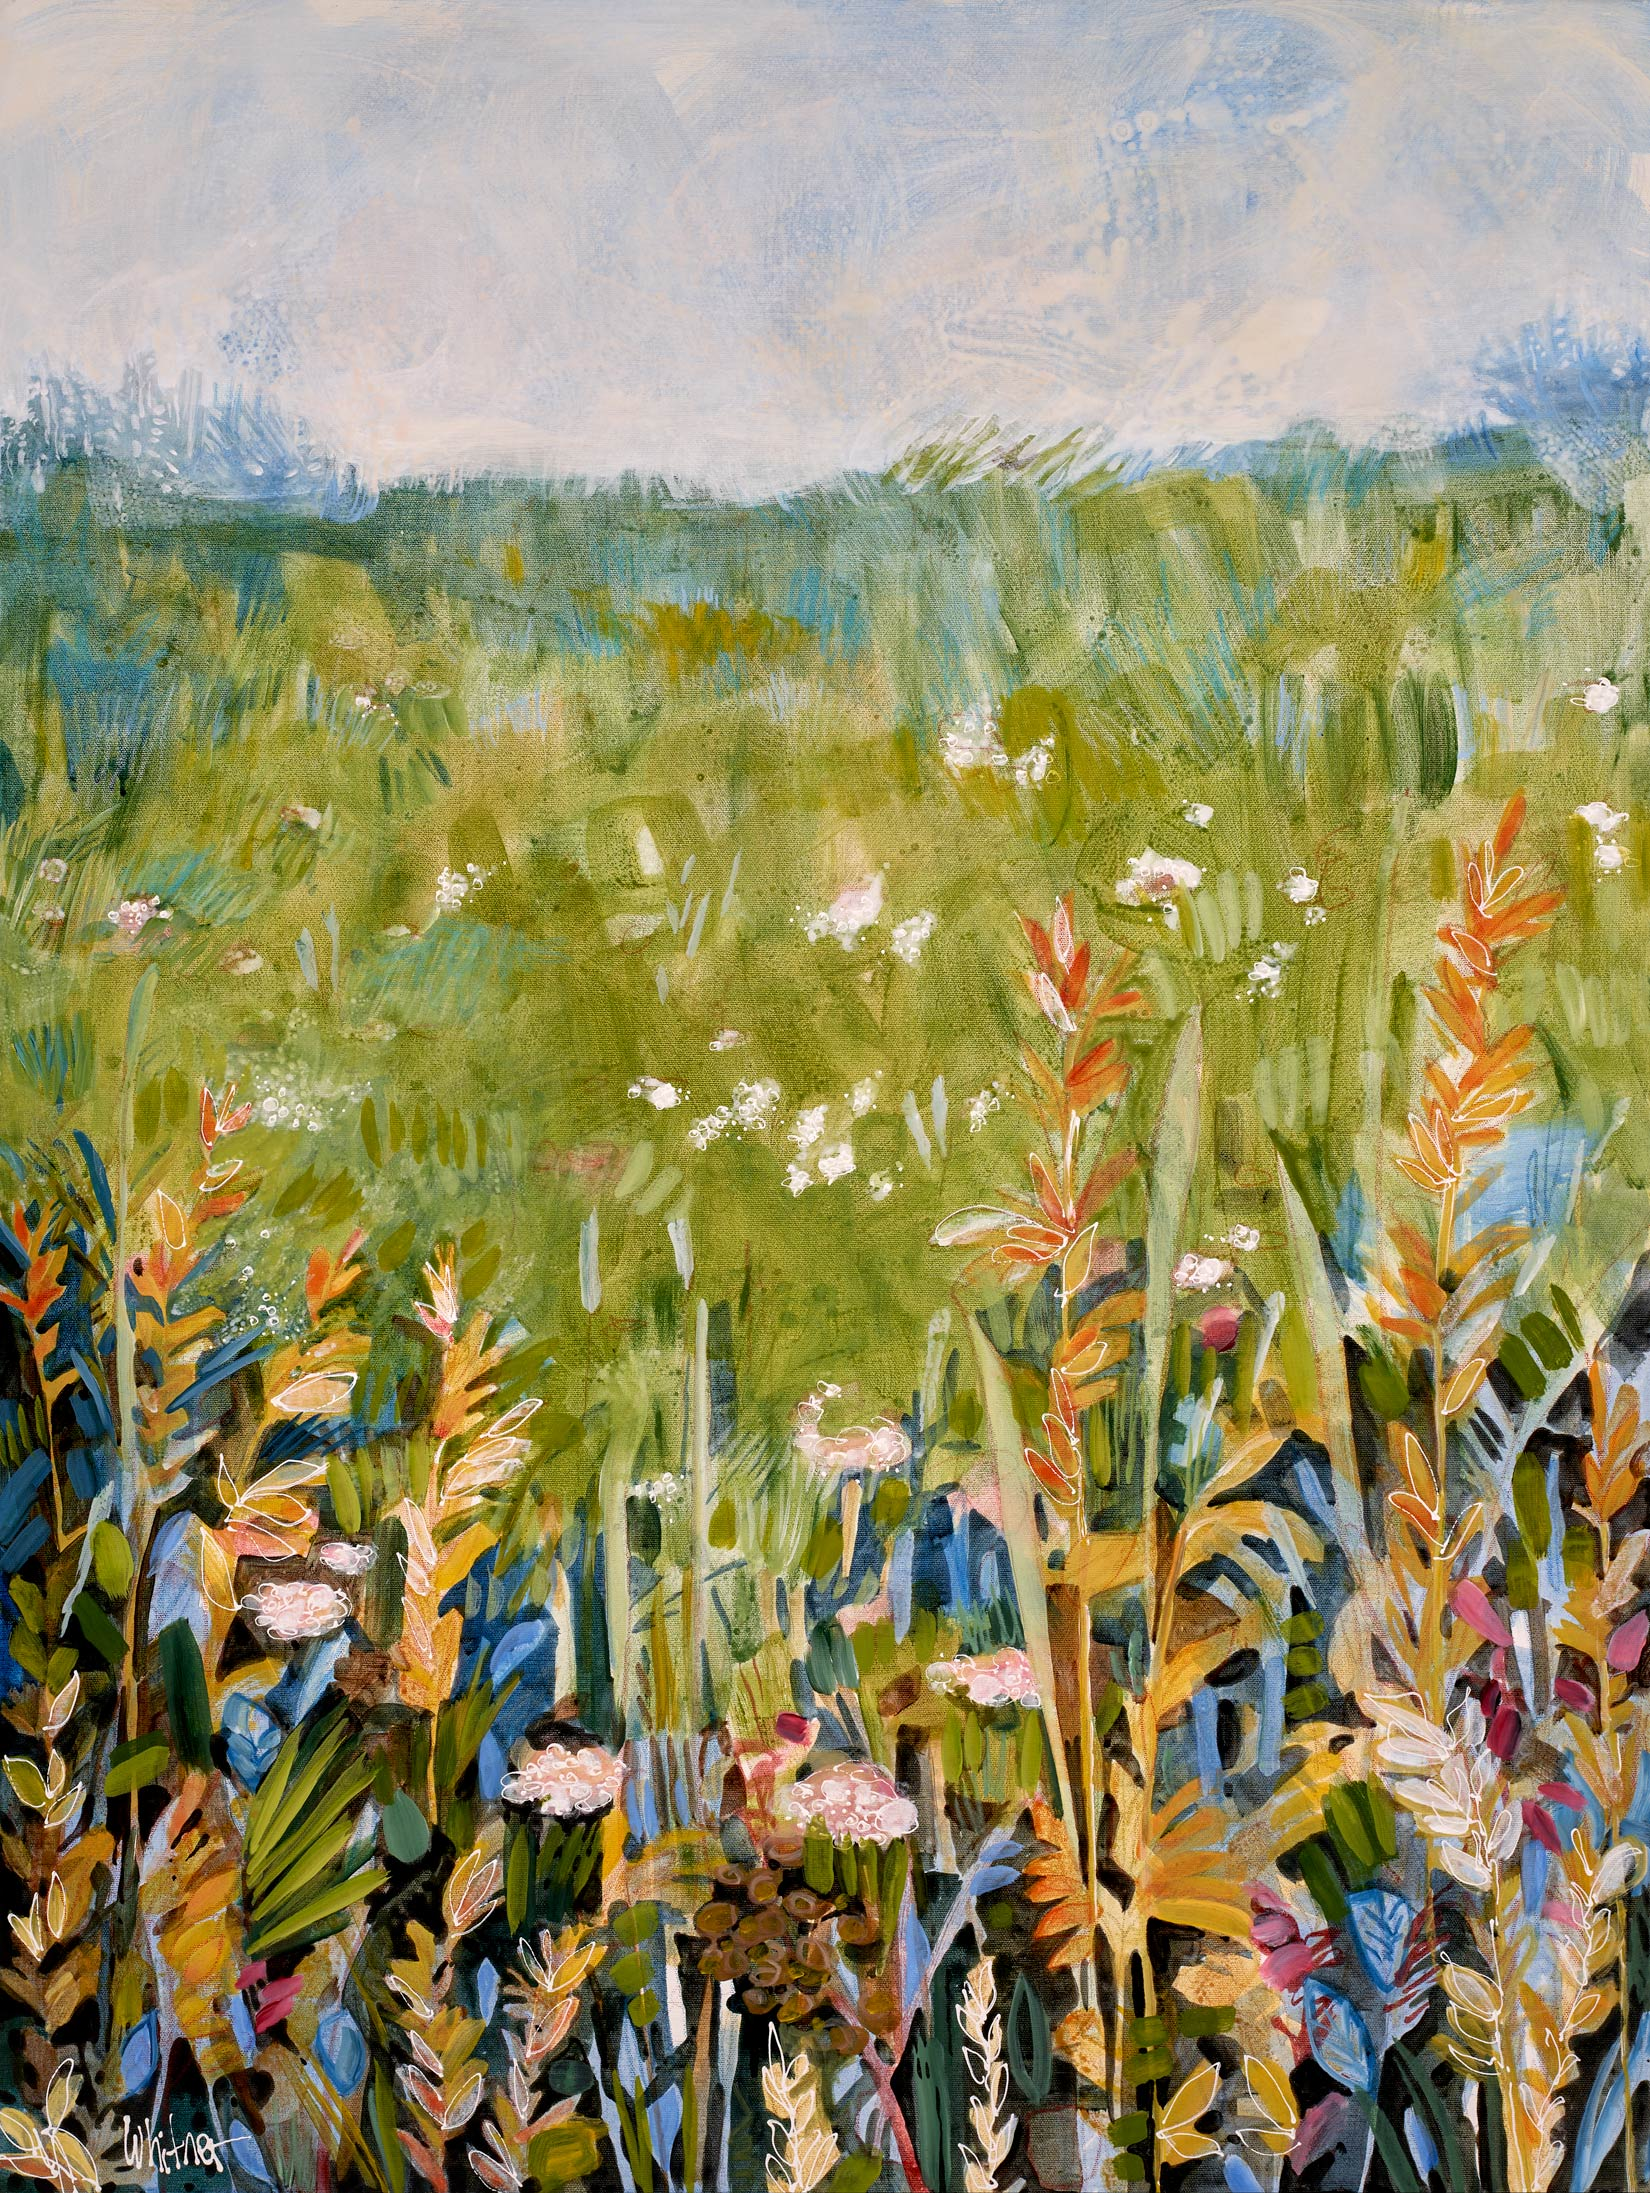 Lance-Whitner-Afternoon in the Meadow painting available at sundancecatalog.com